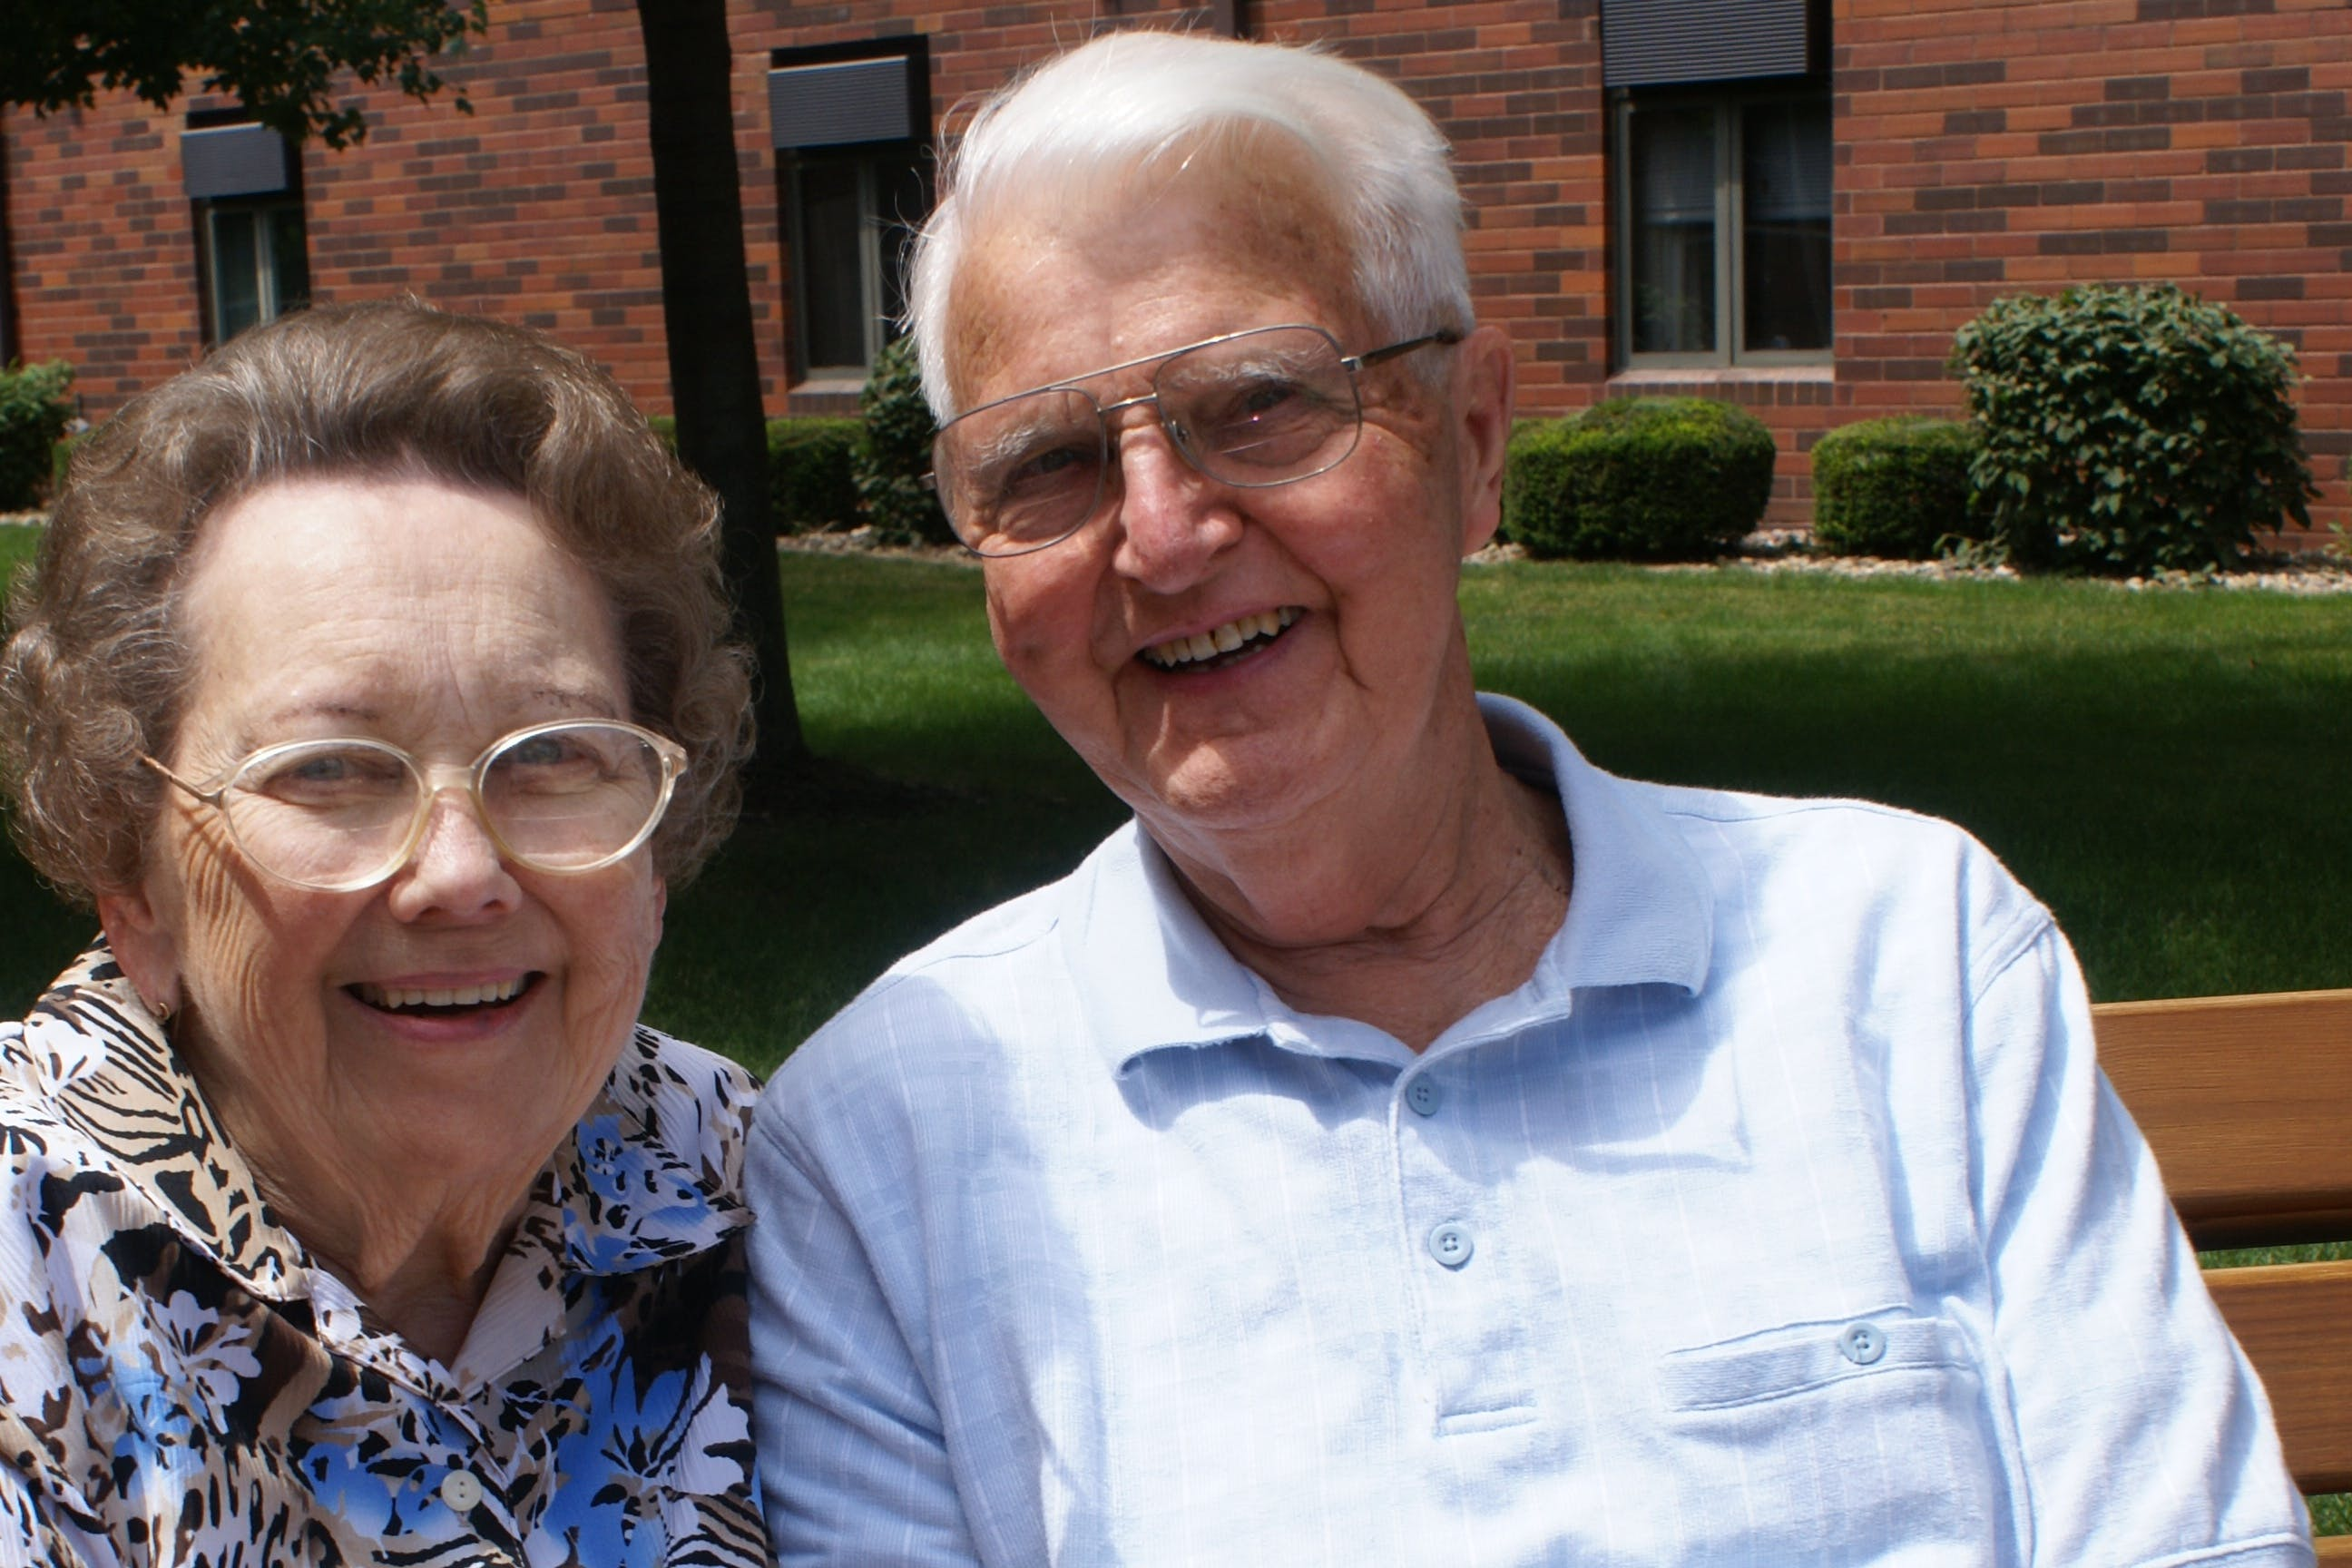 Norma and Robert Pint, longtime donors who started the Norma R. and Robert F. Pint Seminary Scholarship Fund to support Bethel Seminary students.